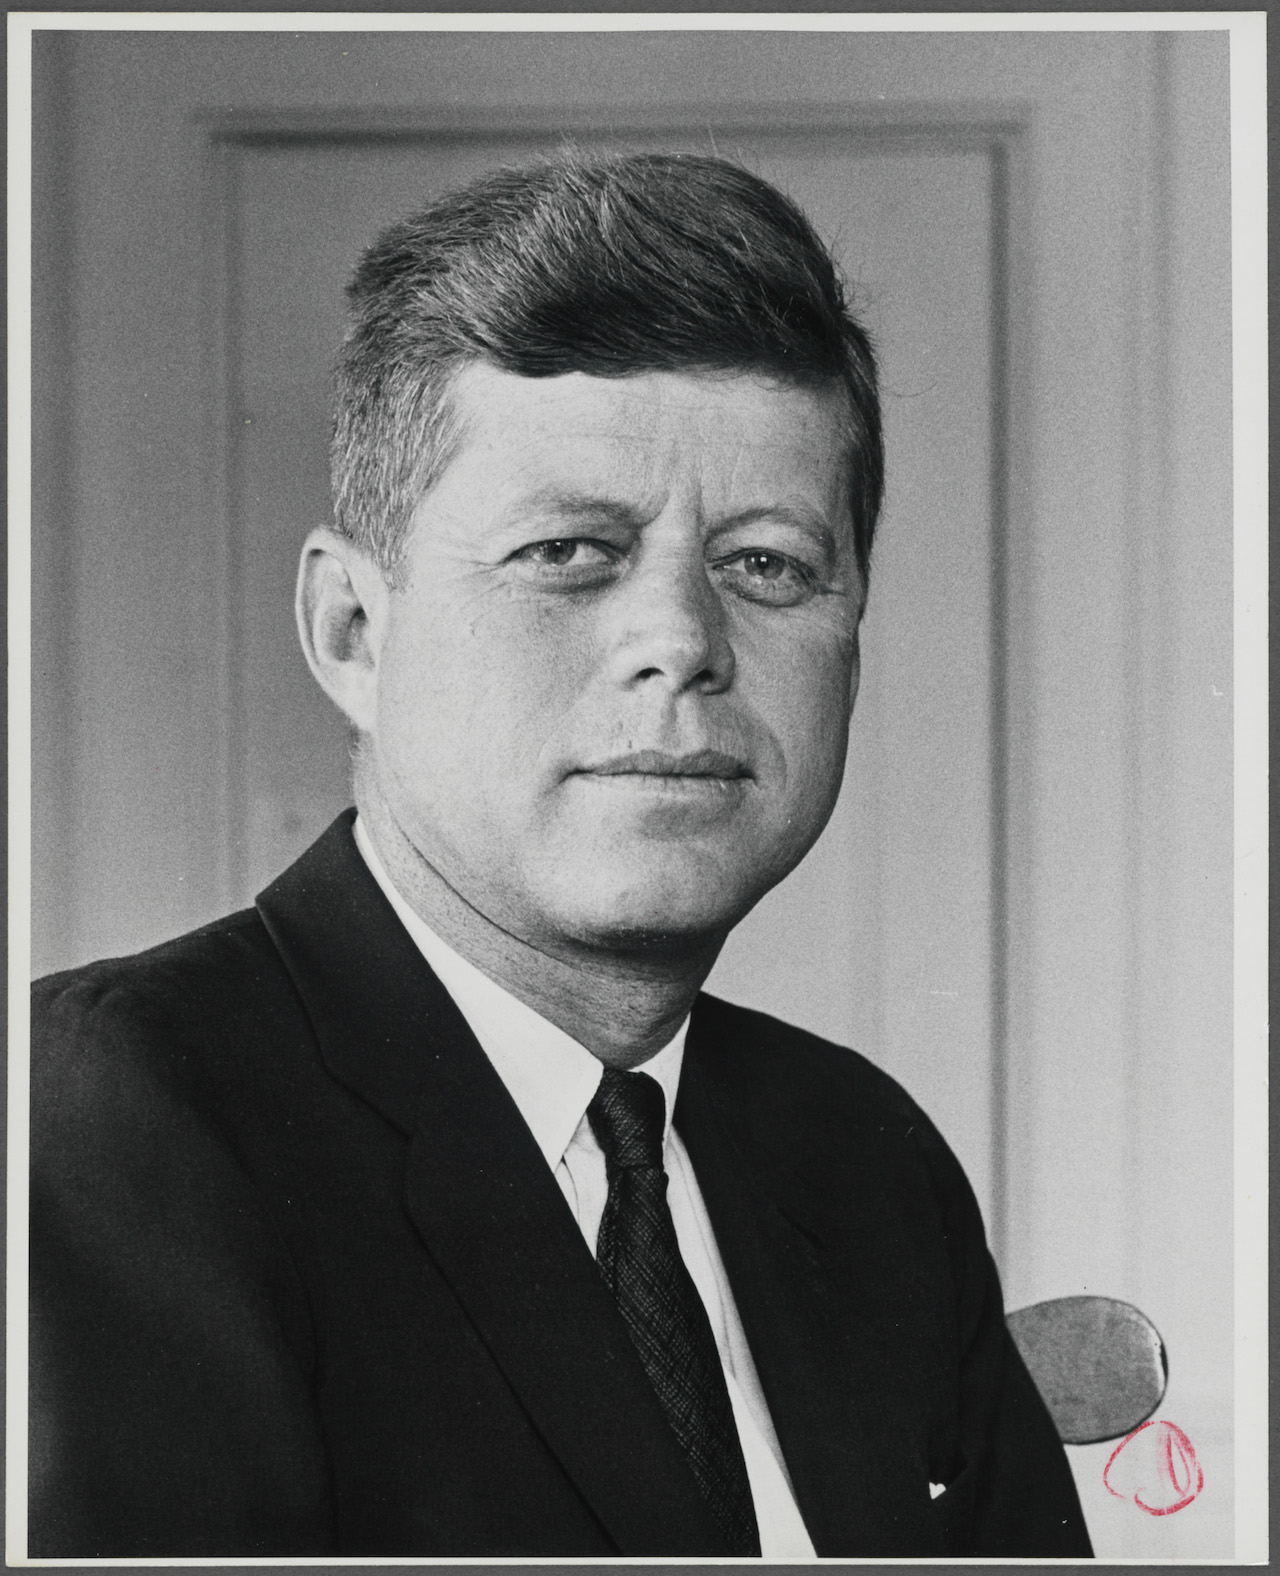 """Norman Rockwell, """"Reference photo for Portrait of John F. Kennedy"""" (1963)"""